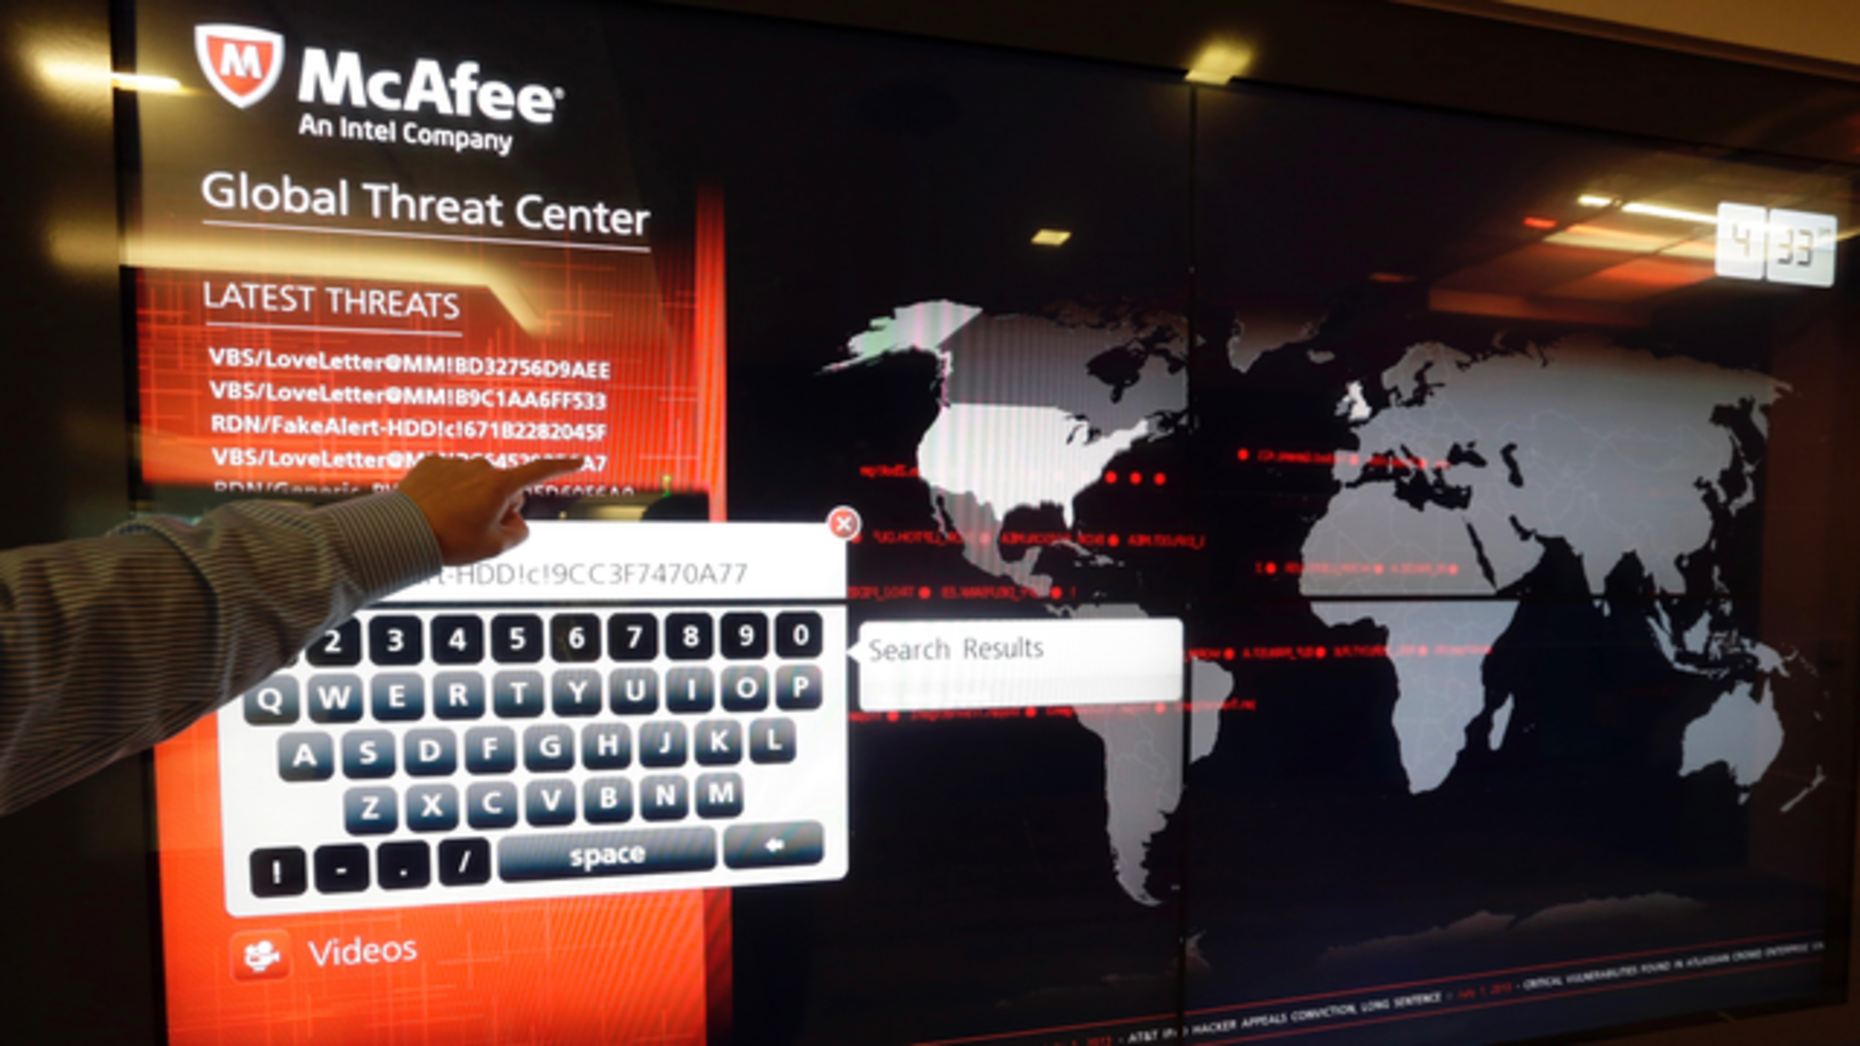 McAfee's Global Threat Center. Photo by AP.